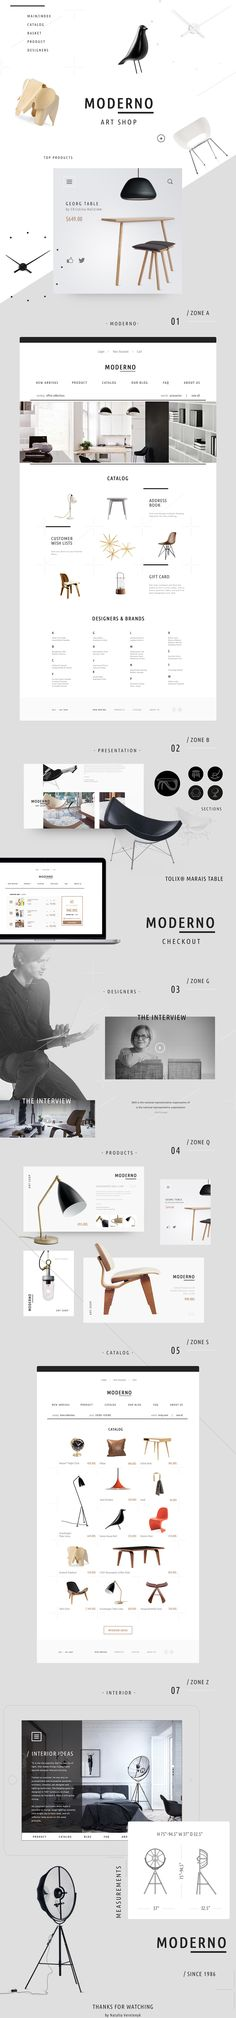 MODERNO / e-commerce on Behance